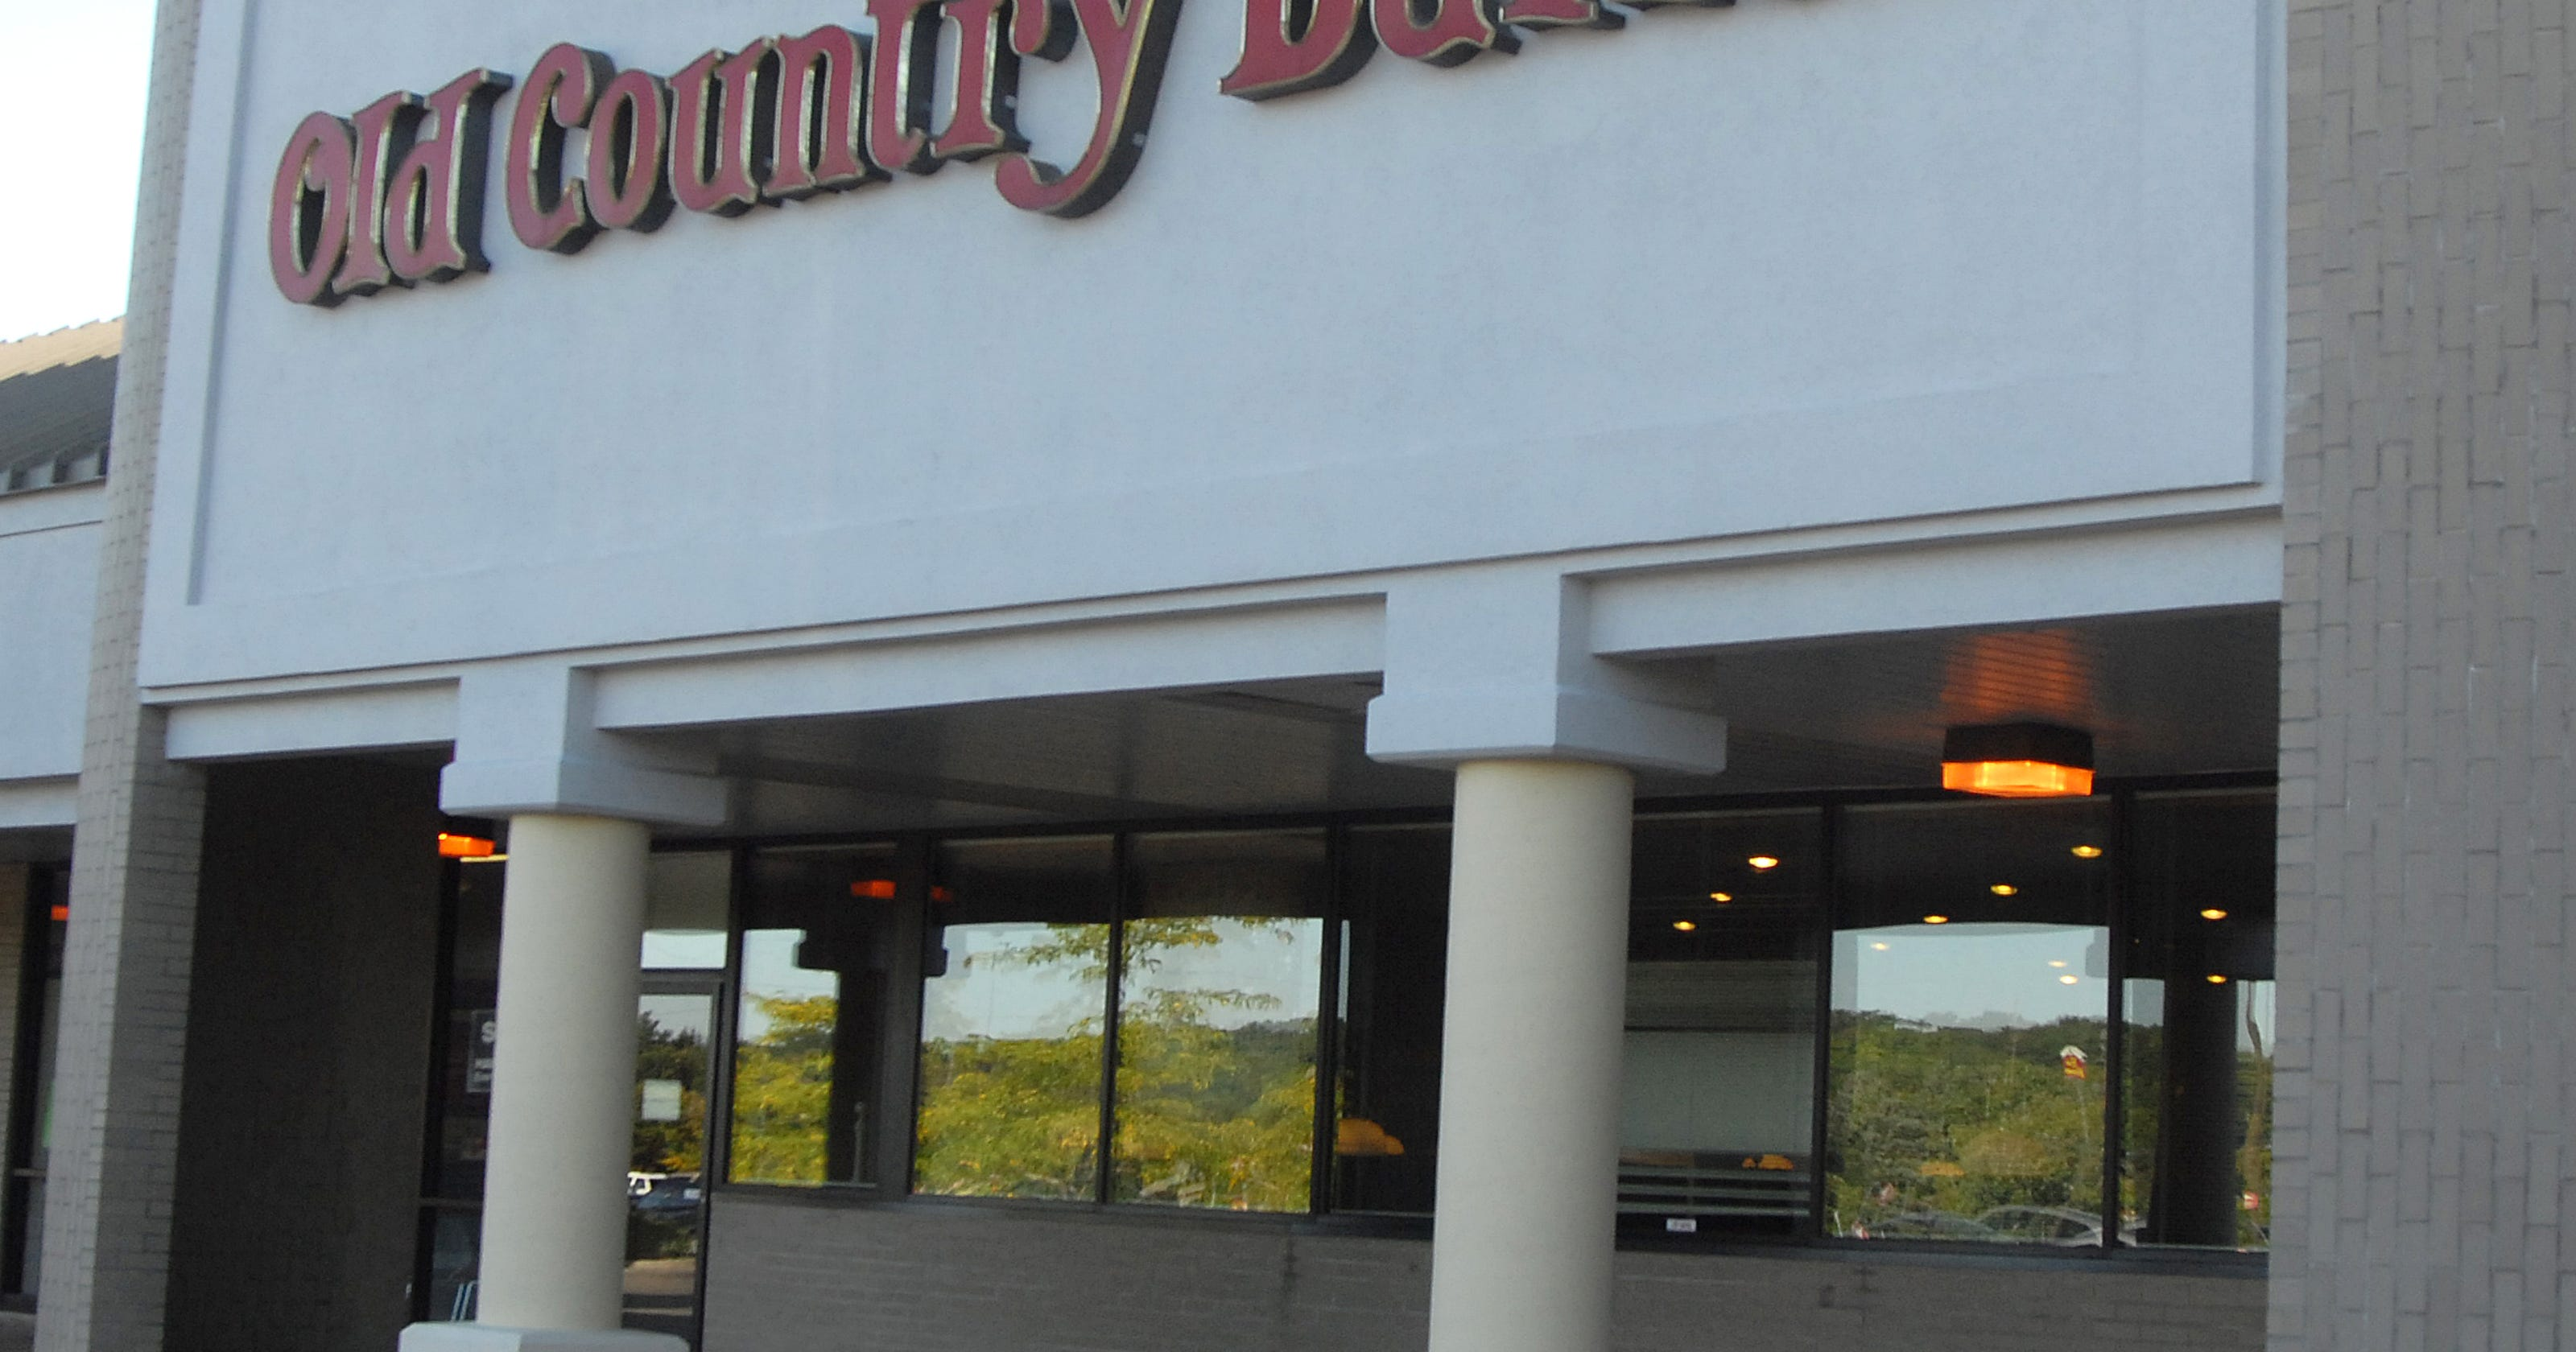 b c old country buffet closed assets to be auctioned